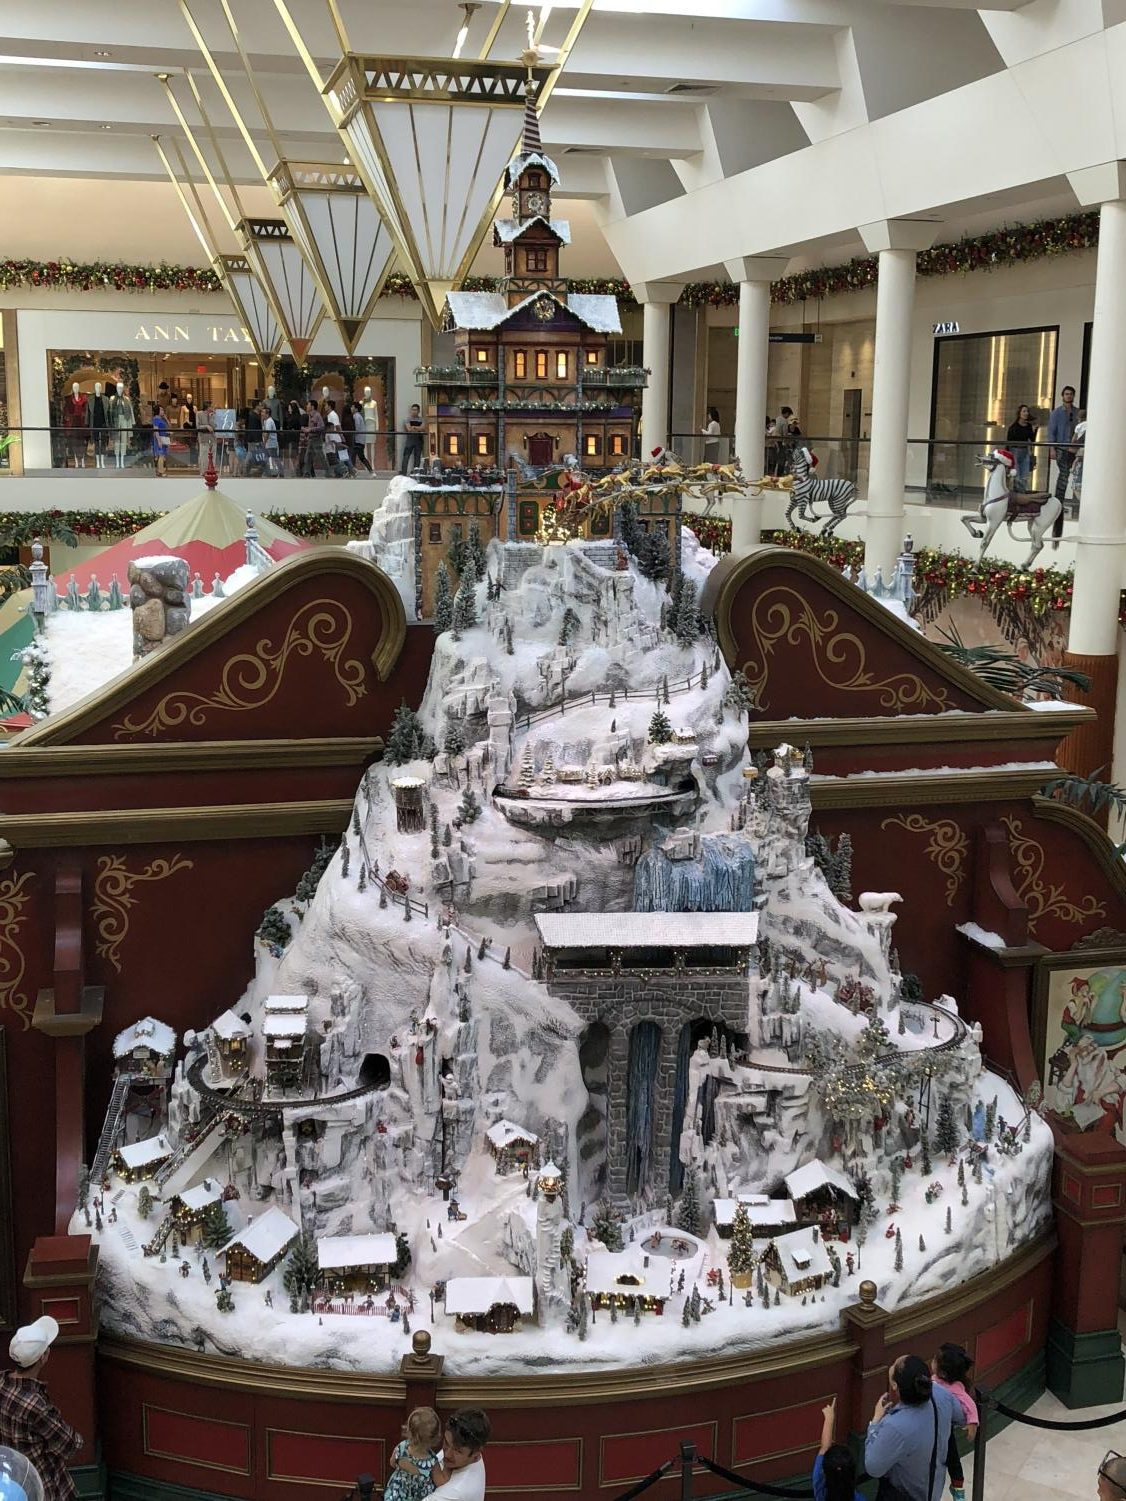 Malls, such as South Coast Plaza, lure holiday shoppers with festive decorations.